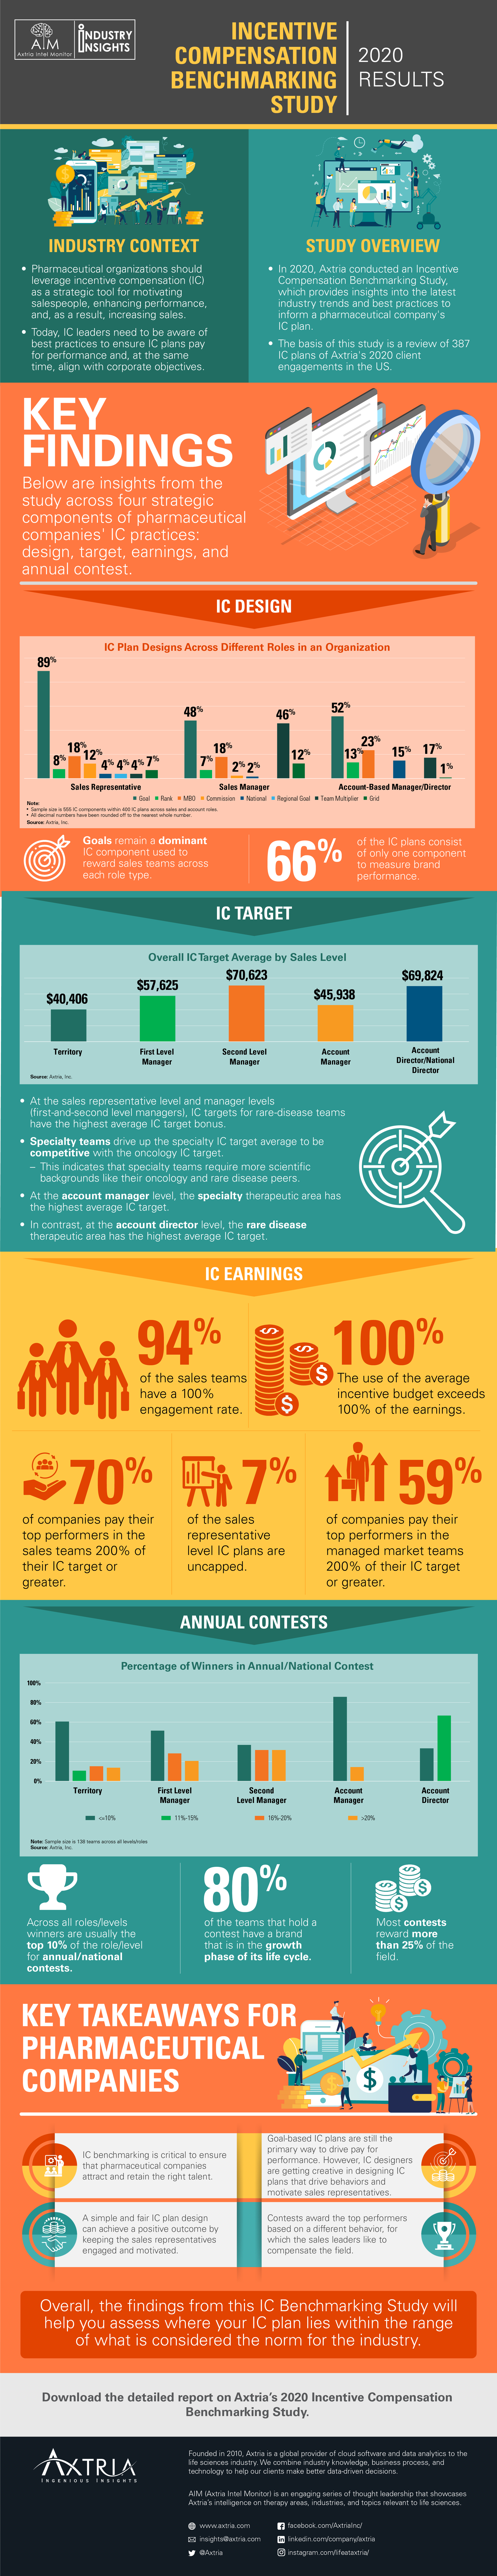 Axtria Insights - Incentive Compensation Benchmarking Study